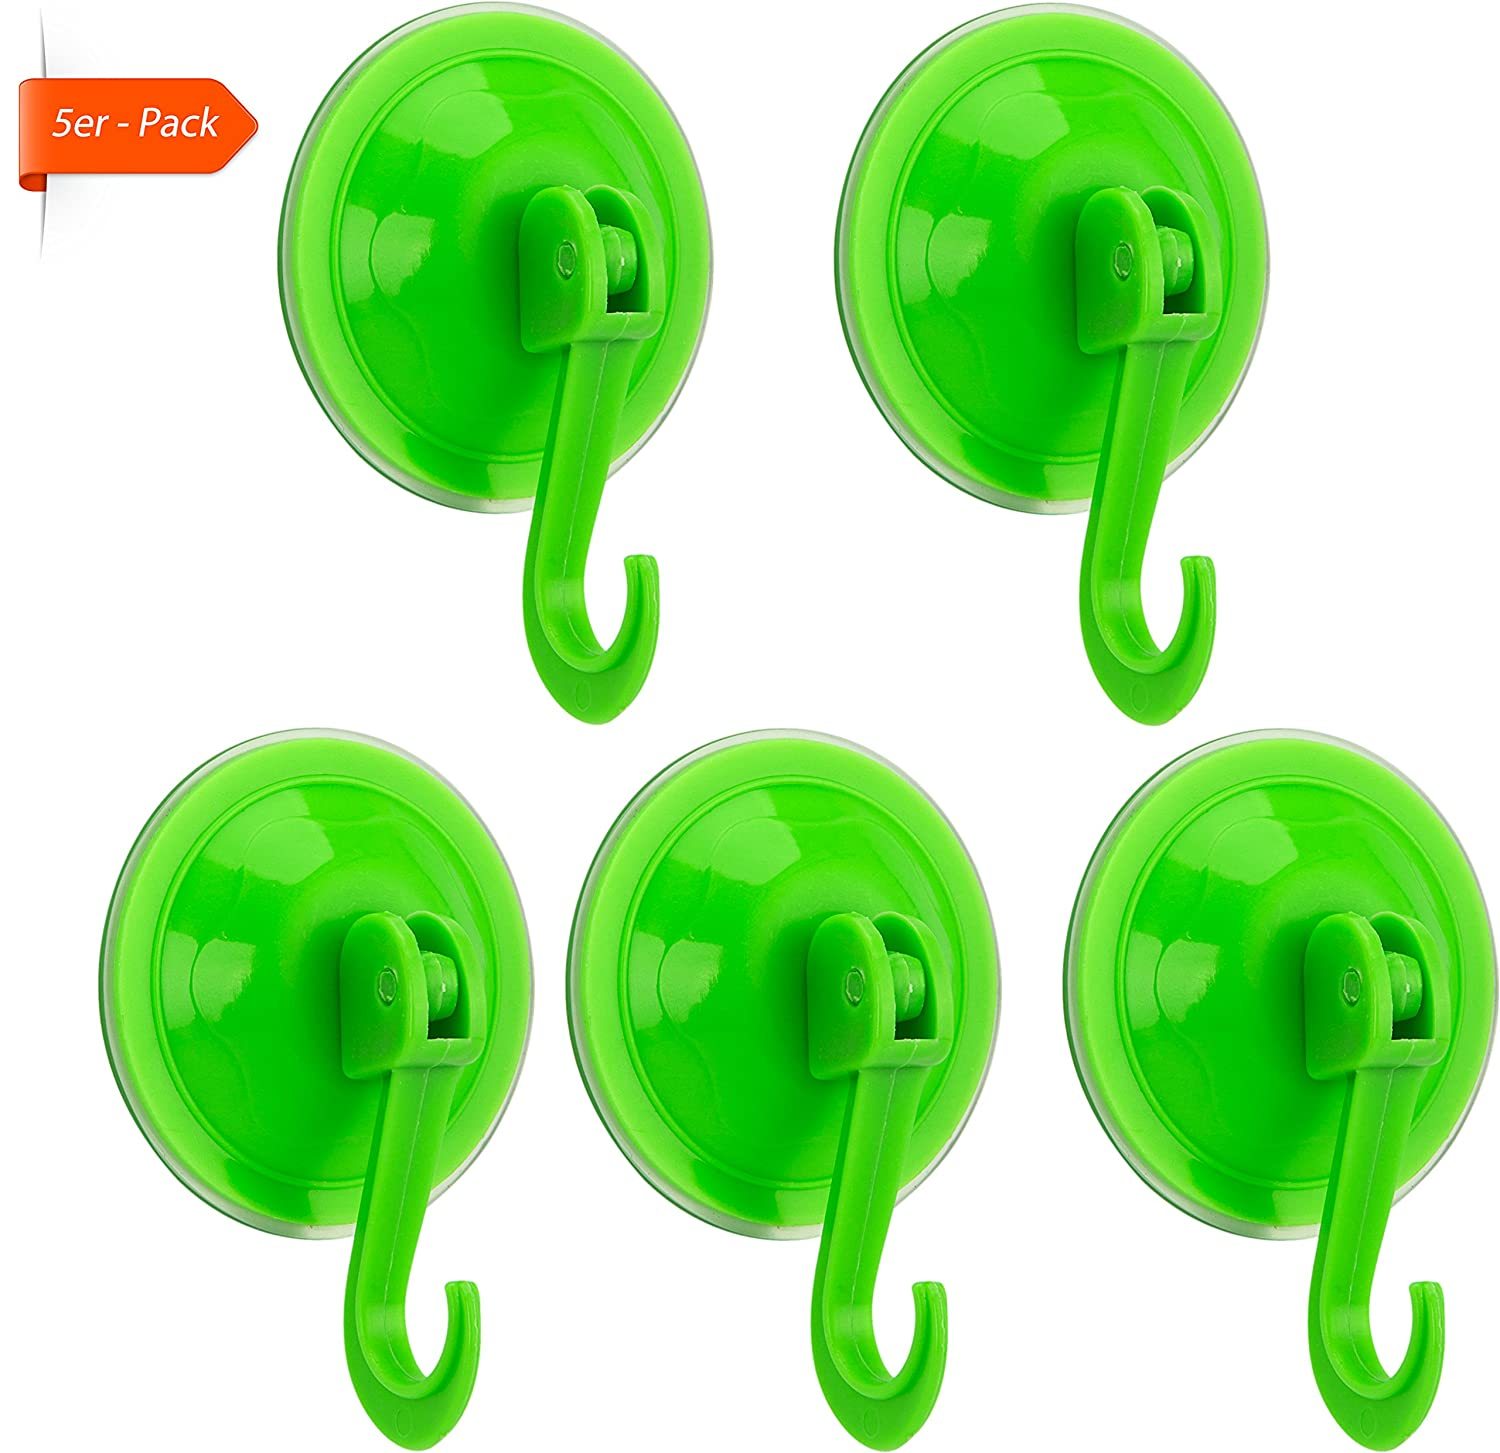 Rusty Bob - Wall hook set with suction cup - for kitchen & bathroom, plastic (for glass, ceramic tile), 15kg load capacity, without drilling - 10 Yellow